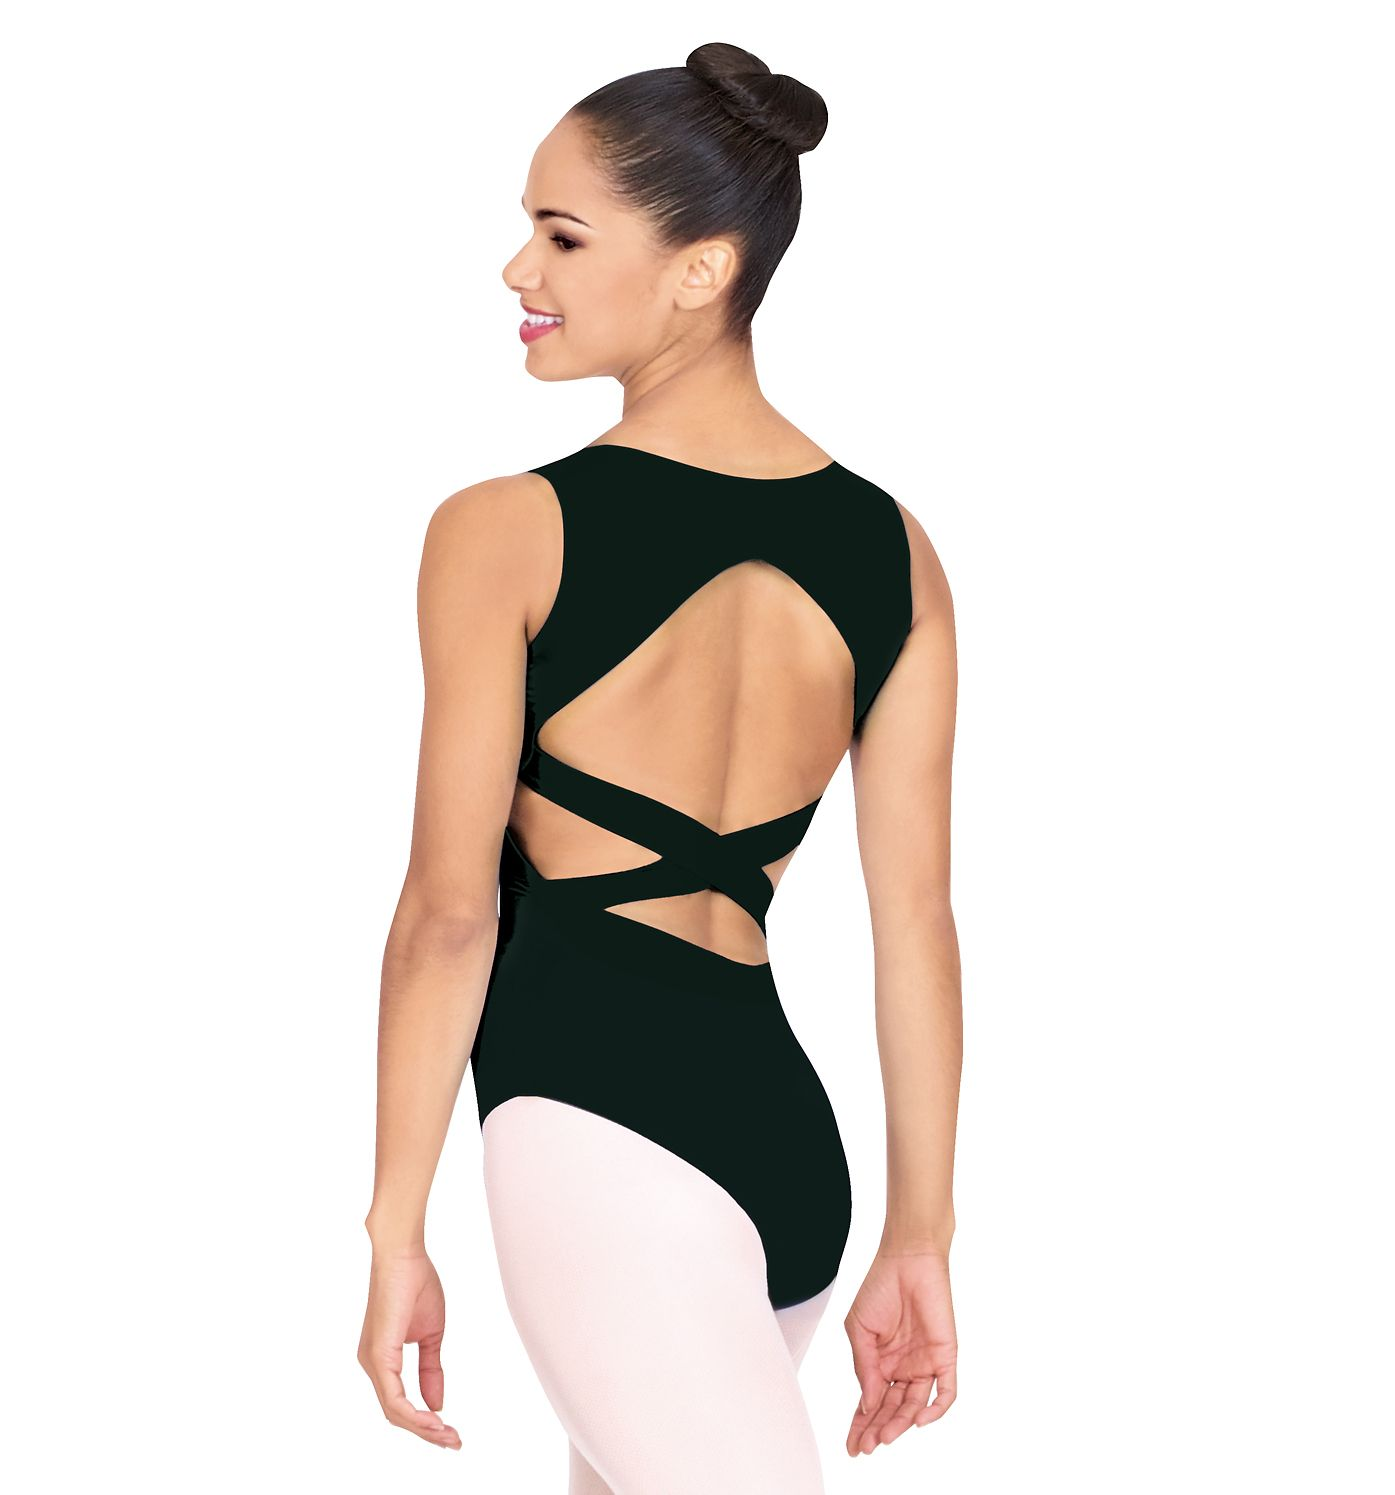 For that Dance attire for adults well, not